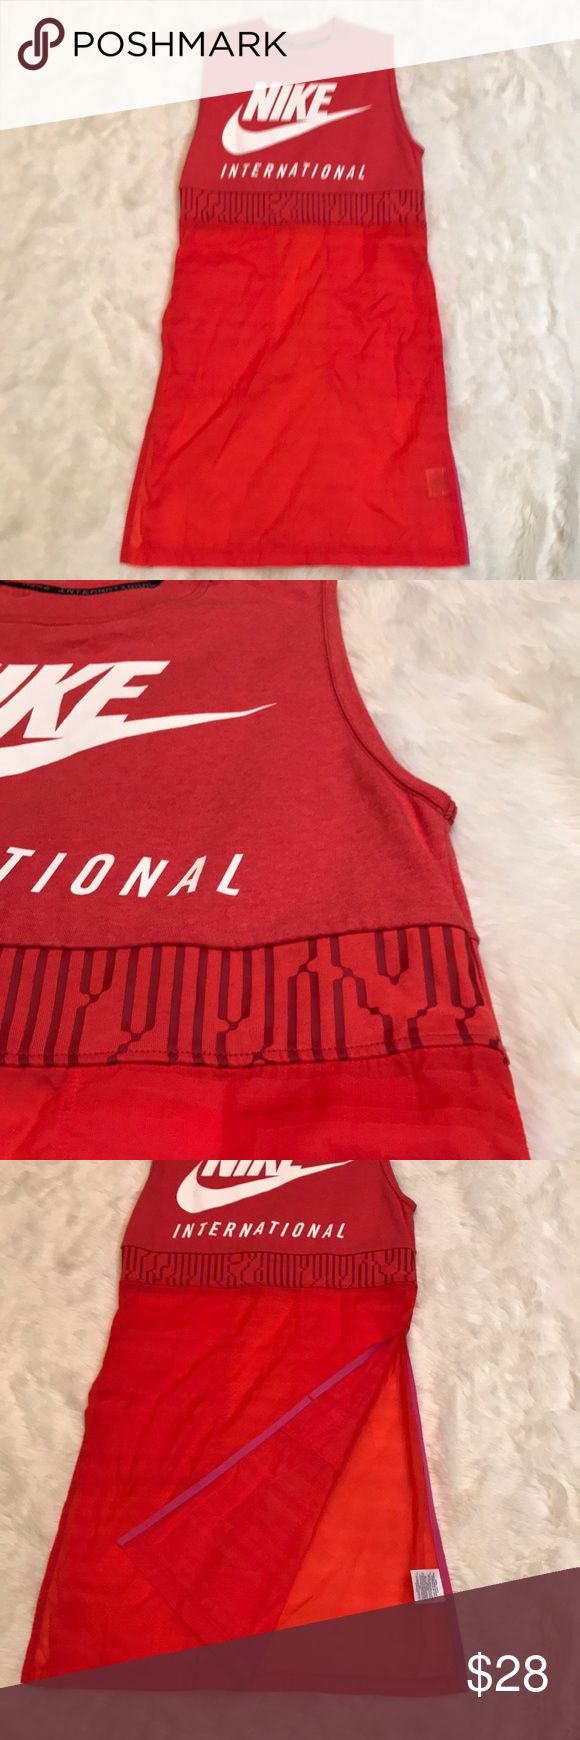 Nike International Tank Dress - Red - Size Small Nike International Tank Dress - Red - Size Small. Tank Dress is new without tags. Top is solid t shirt material and is recycled polyester and cotton blend. Transparent lower section is 99% recycled polyester and 1% other fibers. Has slots on the sides up to hip level (ie you need to wear something on the bottom). Black version shown for style only. Item for sale is red version. Nike Dresses